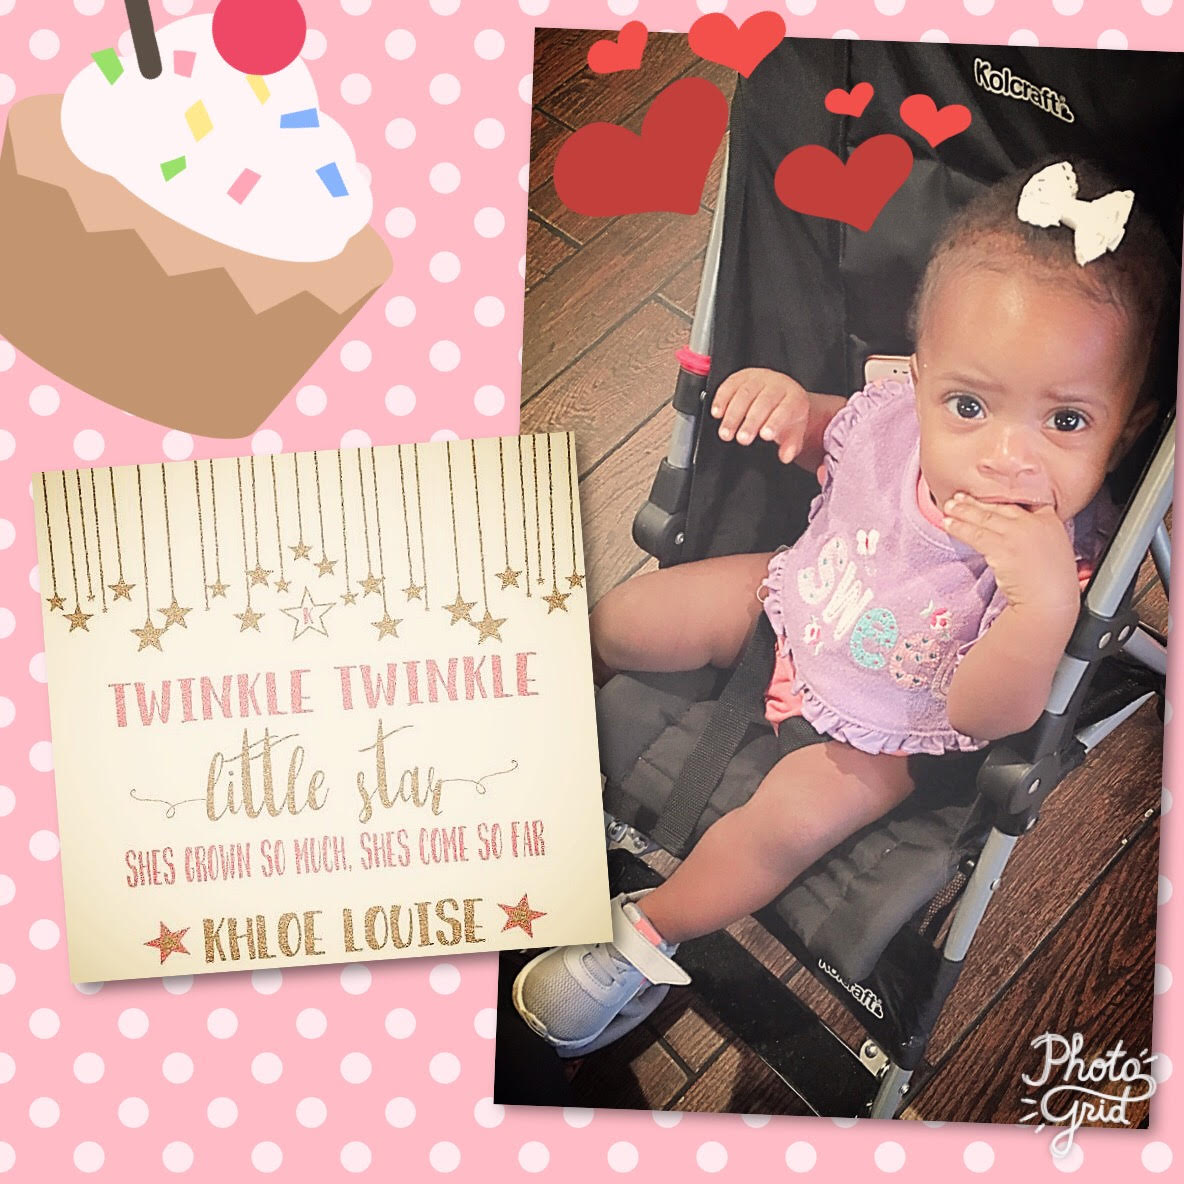 Lunch with a Lady was special in September at Peach Tree Cafeteria as we celebrated a first birthday with a precious little one.